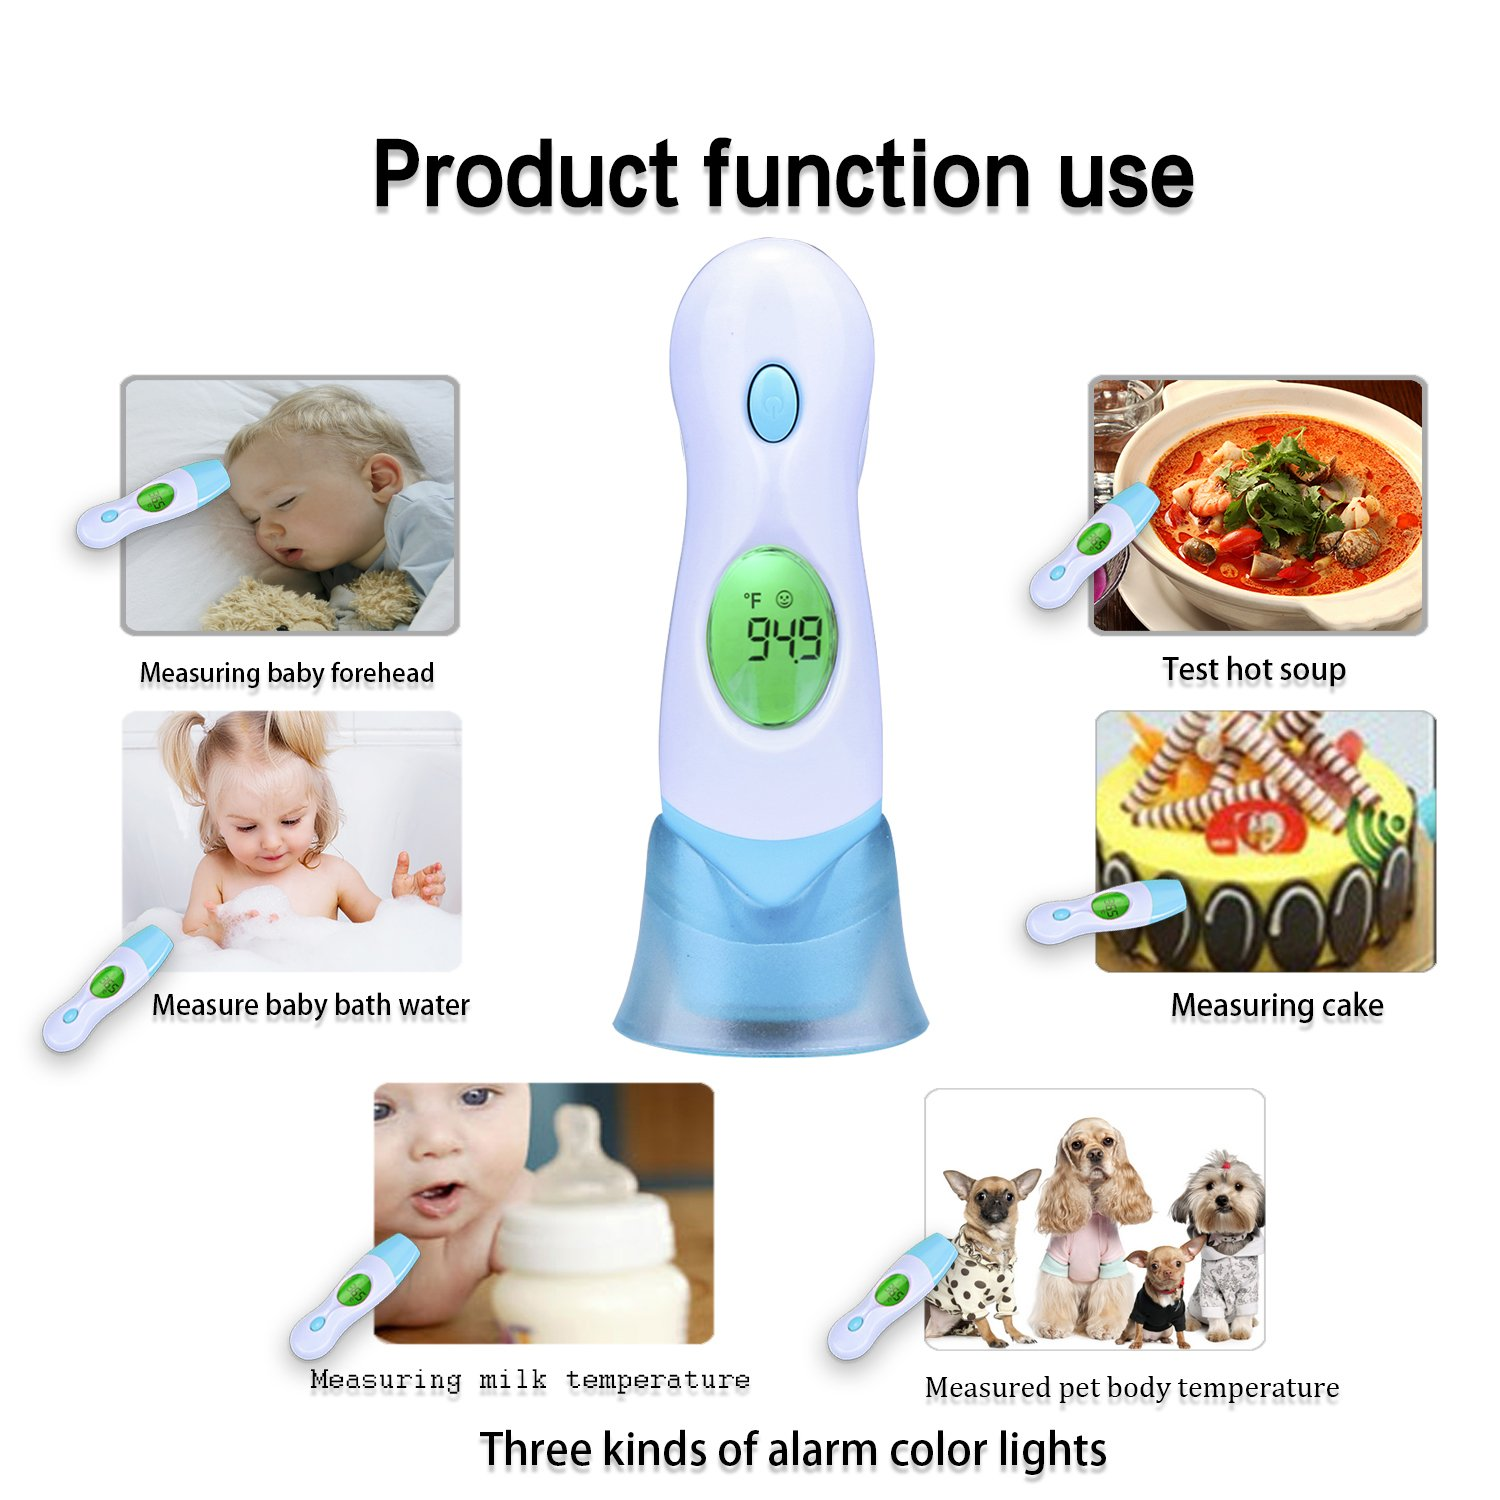 Infrared Ear Thermometer, Topoint Body Temperature Portable Handheld Forehead Digital Non Contact Thermometer with Clock